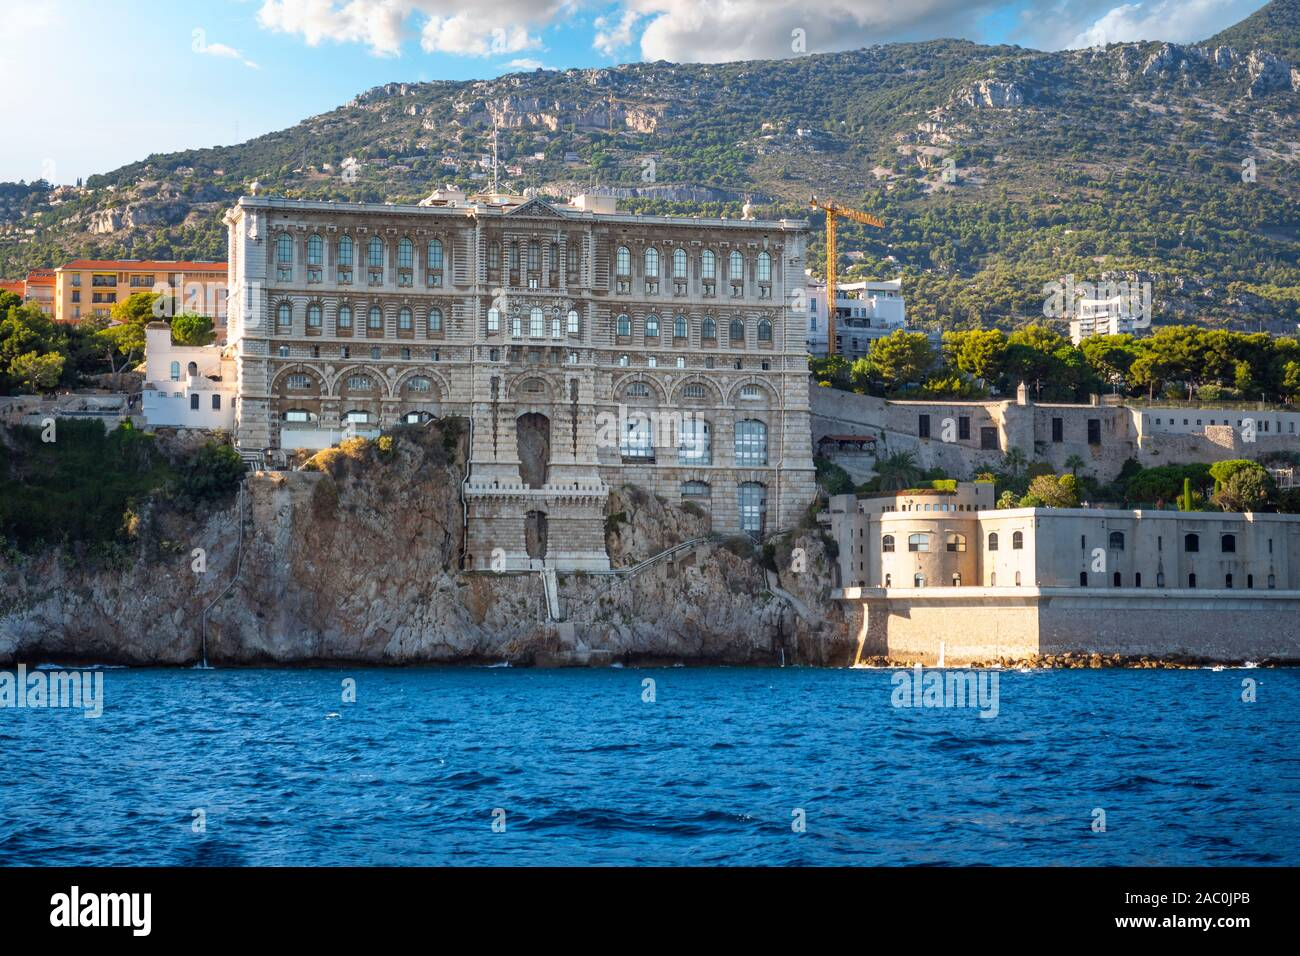 View from the sea of the Oceanographic Museum Aquarium on the coast of Monte Carlo, Monaco, on the French Riviera. Stock Photo